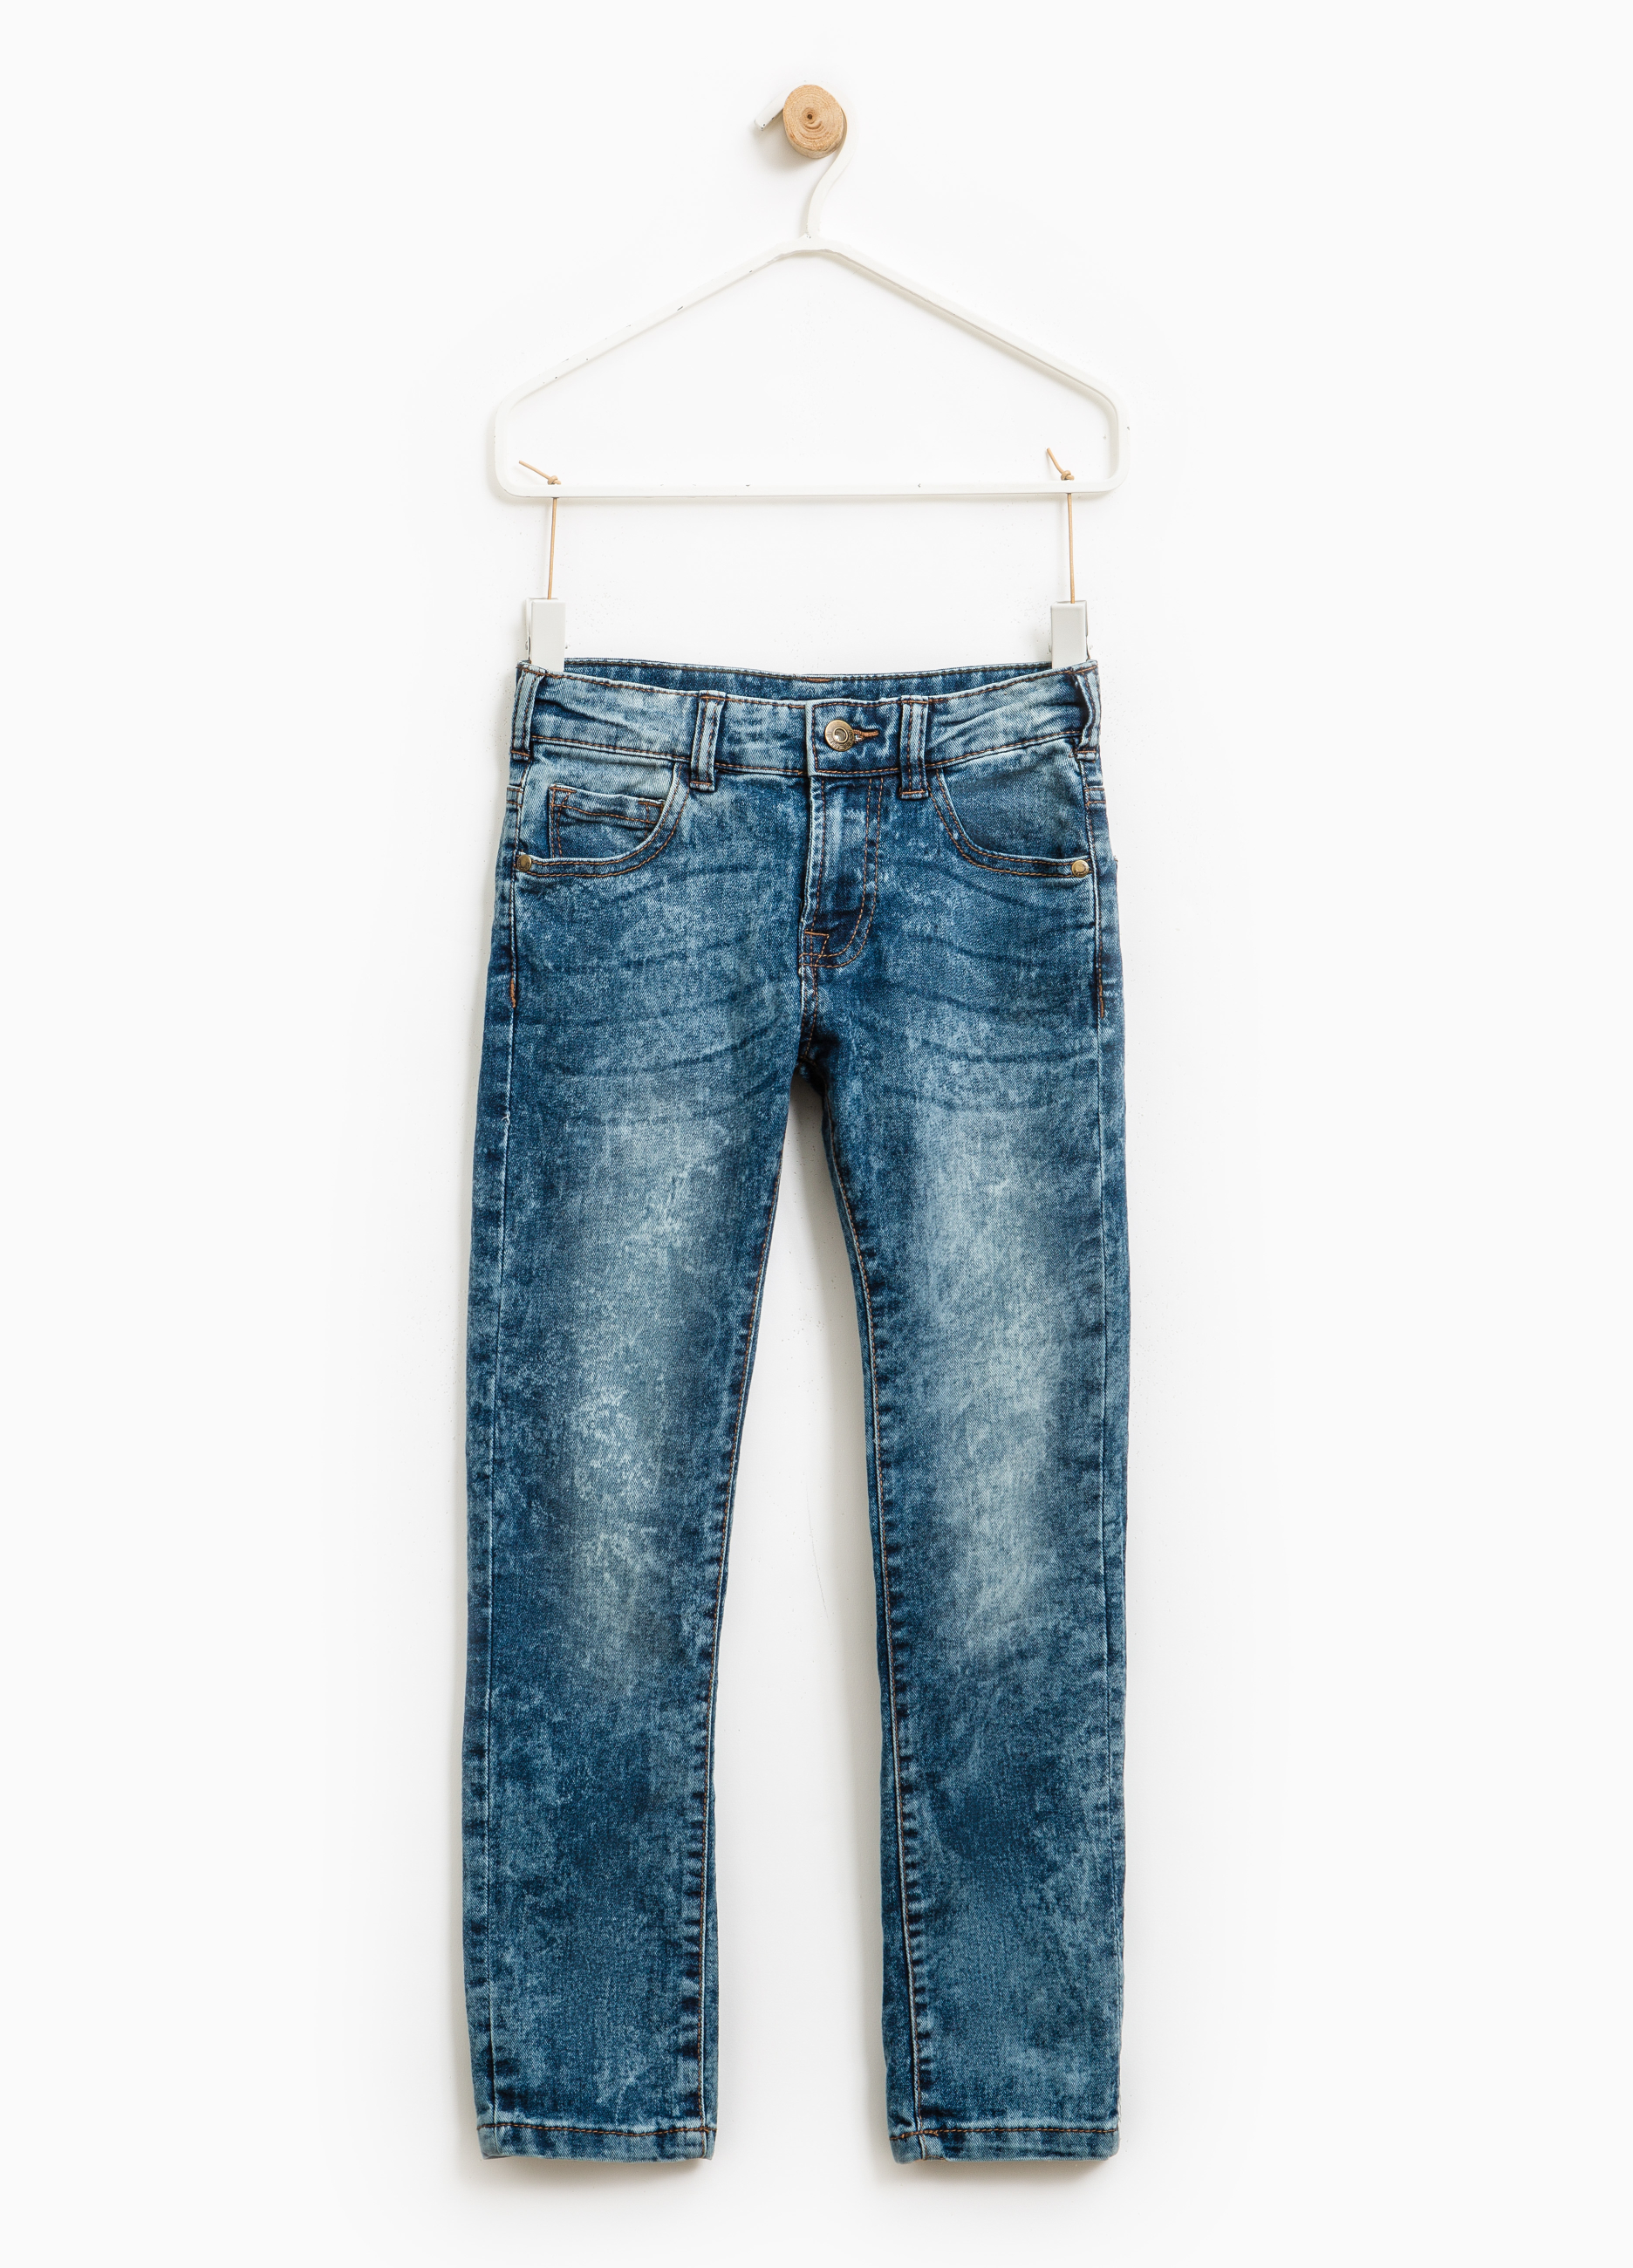 Mis Ovs Dyed Skinny Jeans Fit Effect Hq51fZvw